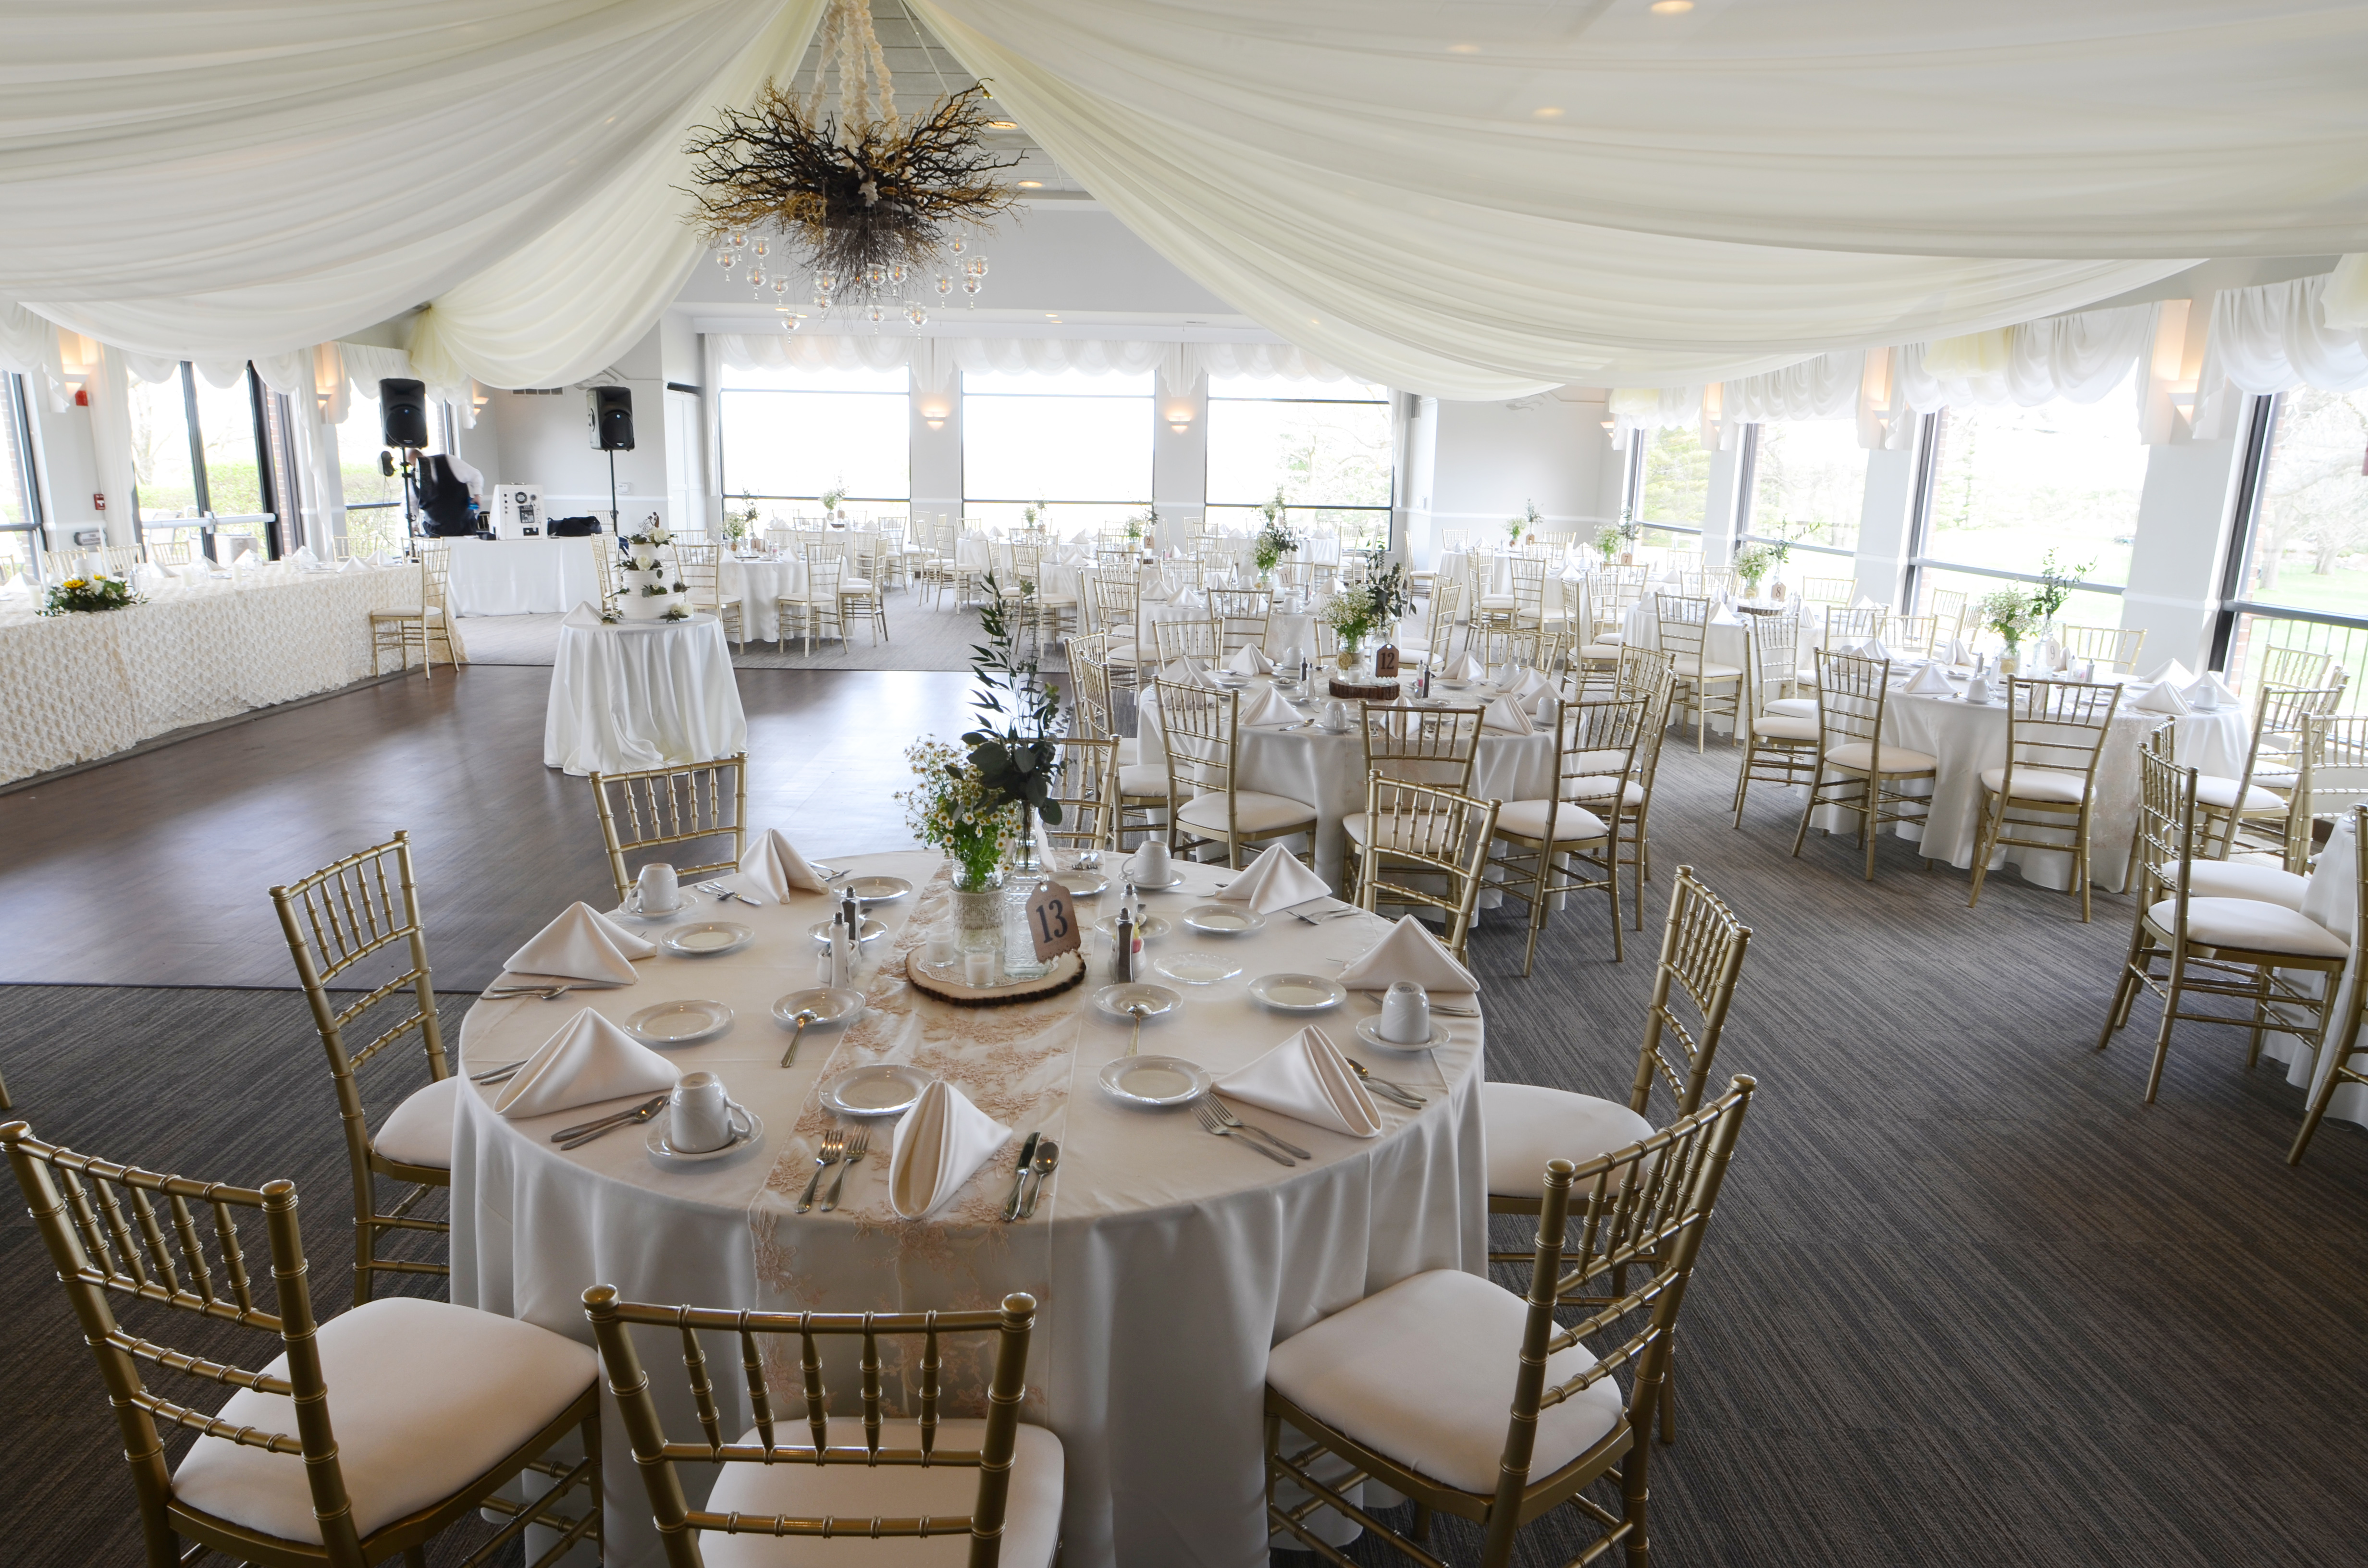 Photo of the Mystic Creek banquet room set up for a wedding.